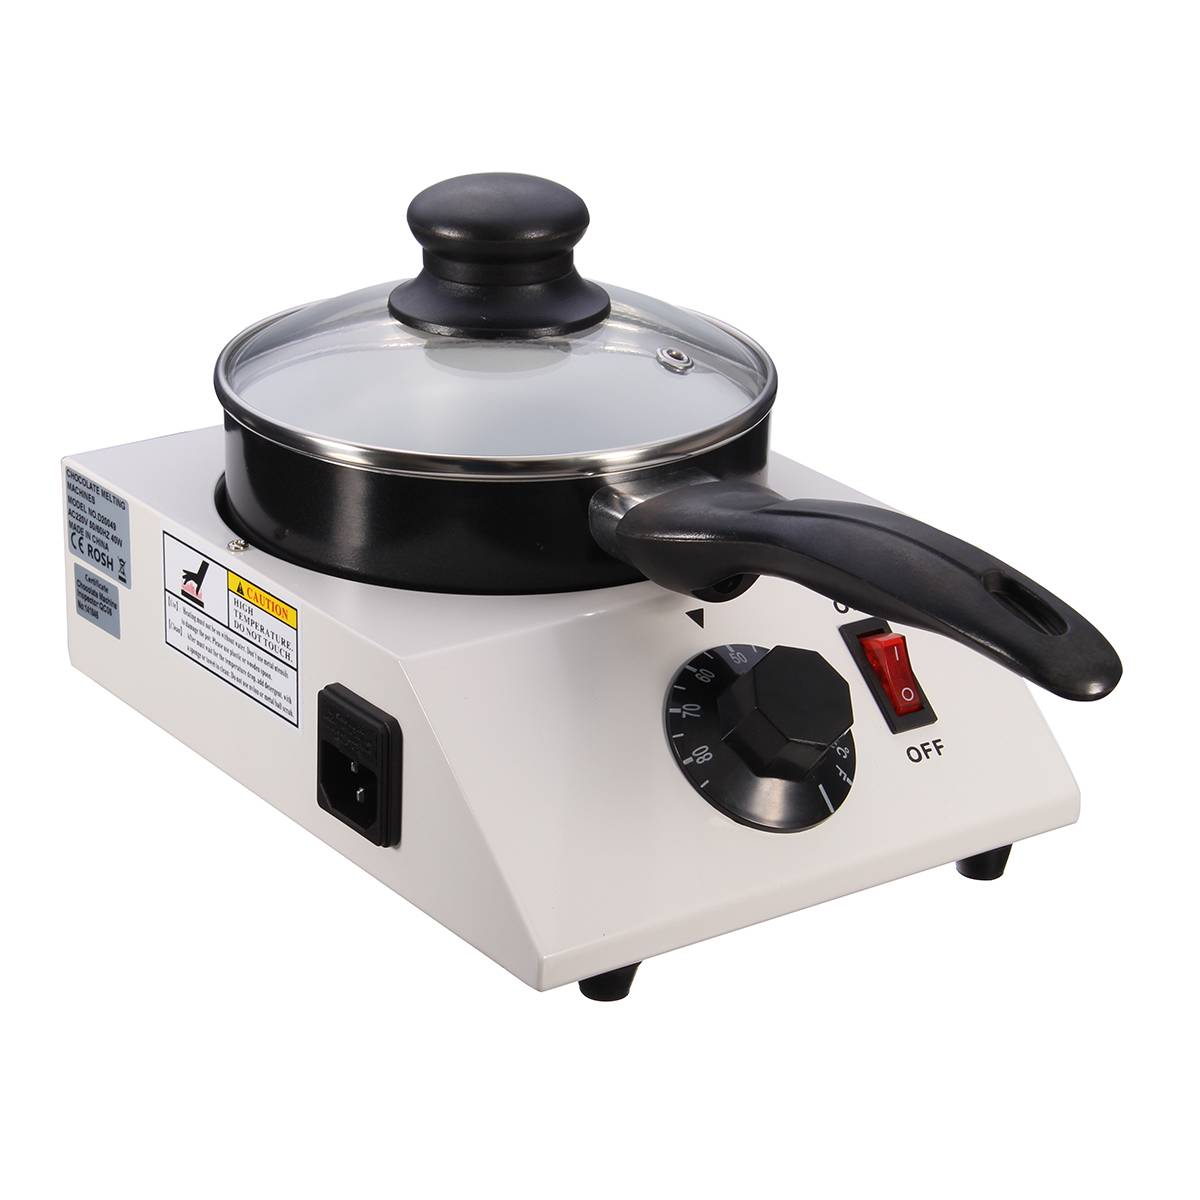 Electric Chocolate Cheese Melting Machine 40W Mini Ceramic Non-Stick Pot Tempering Cylinder Melter Pan With Single Pan Ceramic